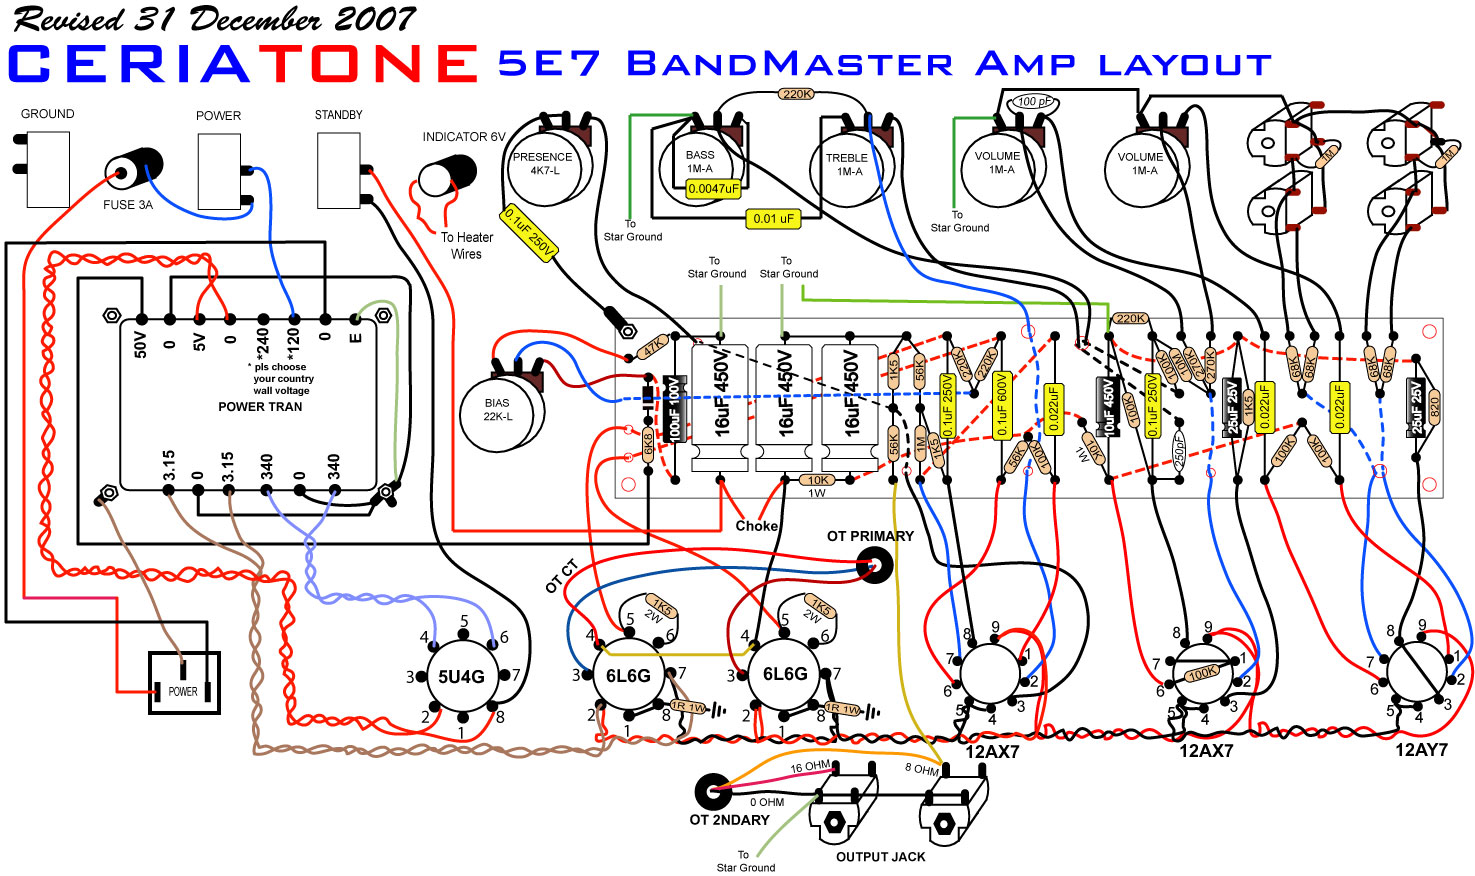 Power Cord Schematic Auto Electrical Wiring Diagram Rg Krogerus Bluesmaster U2013 5e7 Bandmaster Build U00bb Suregork Diy